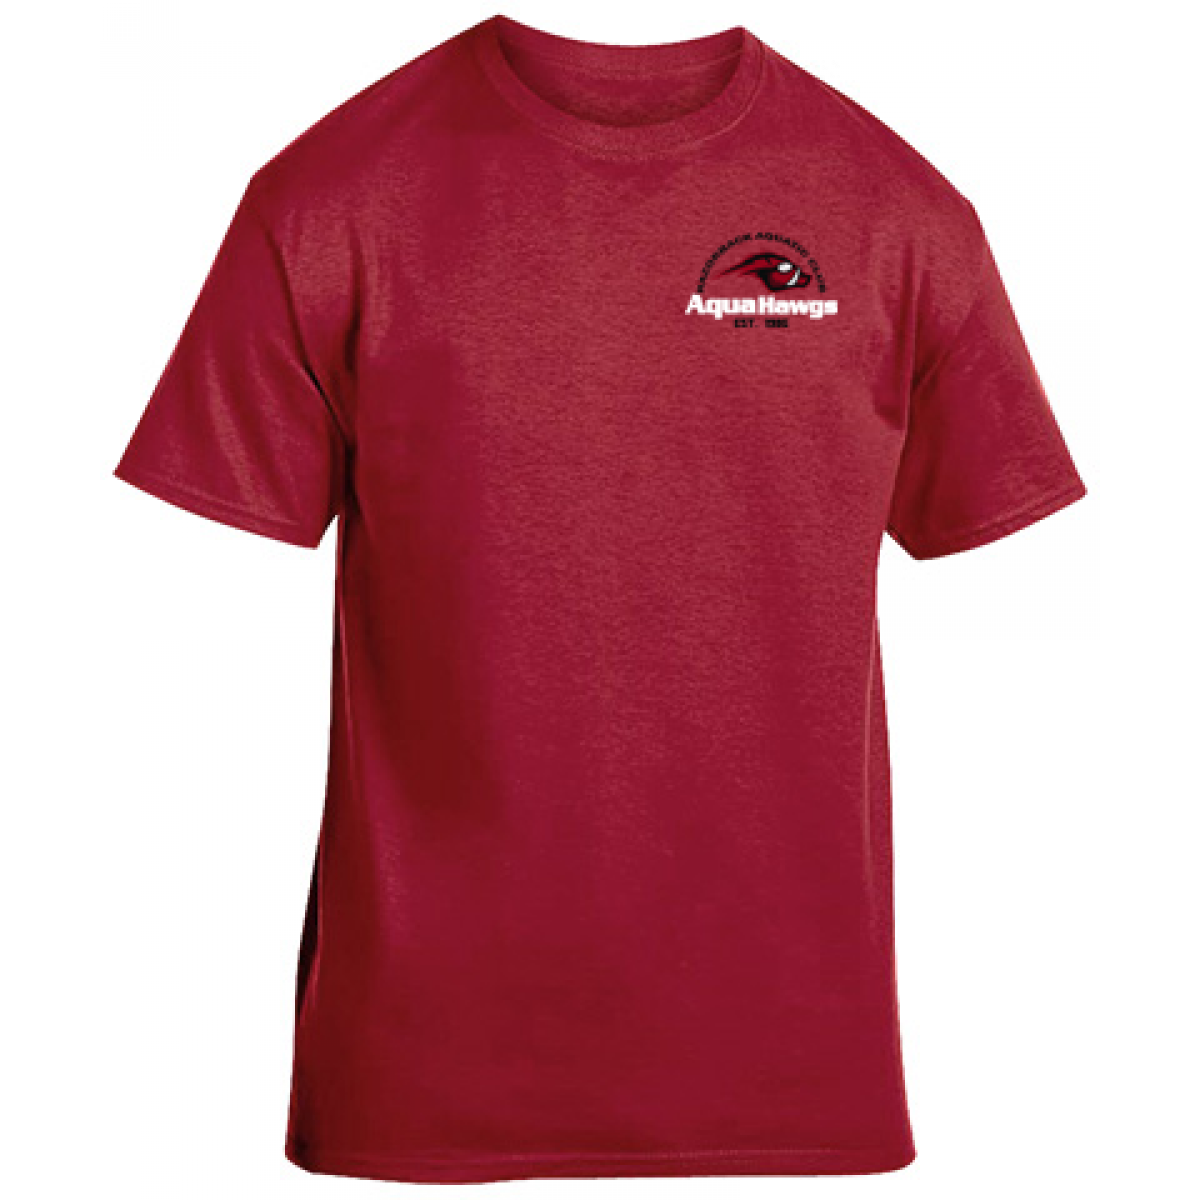 Gildan Cotton Short Sleeve T-Shirt - Cardinal Red-Cardinal Red-YL